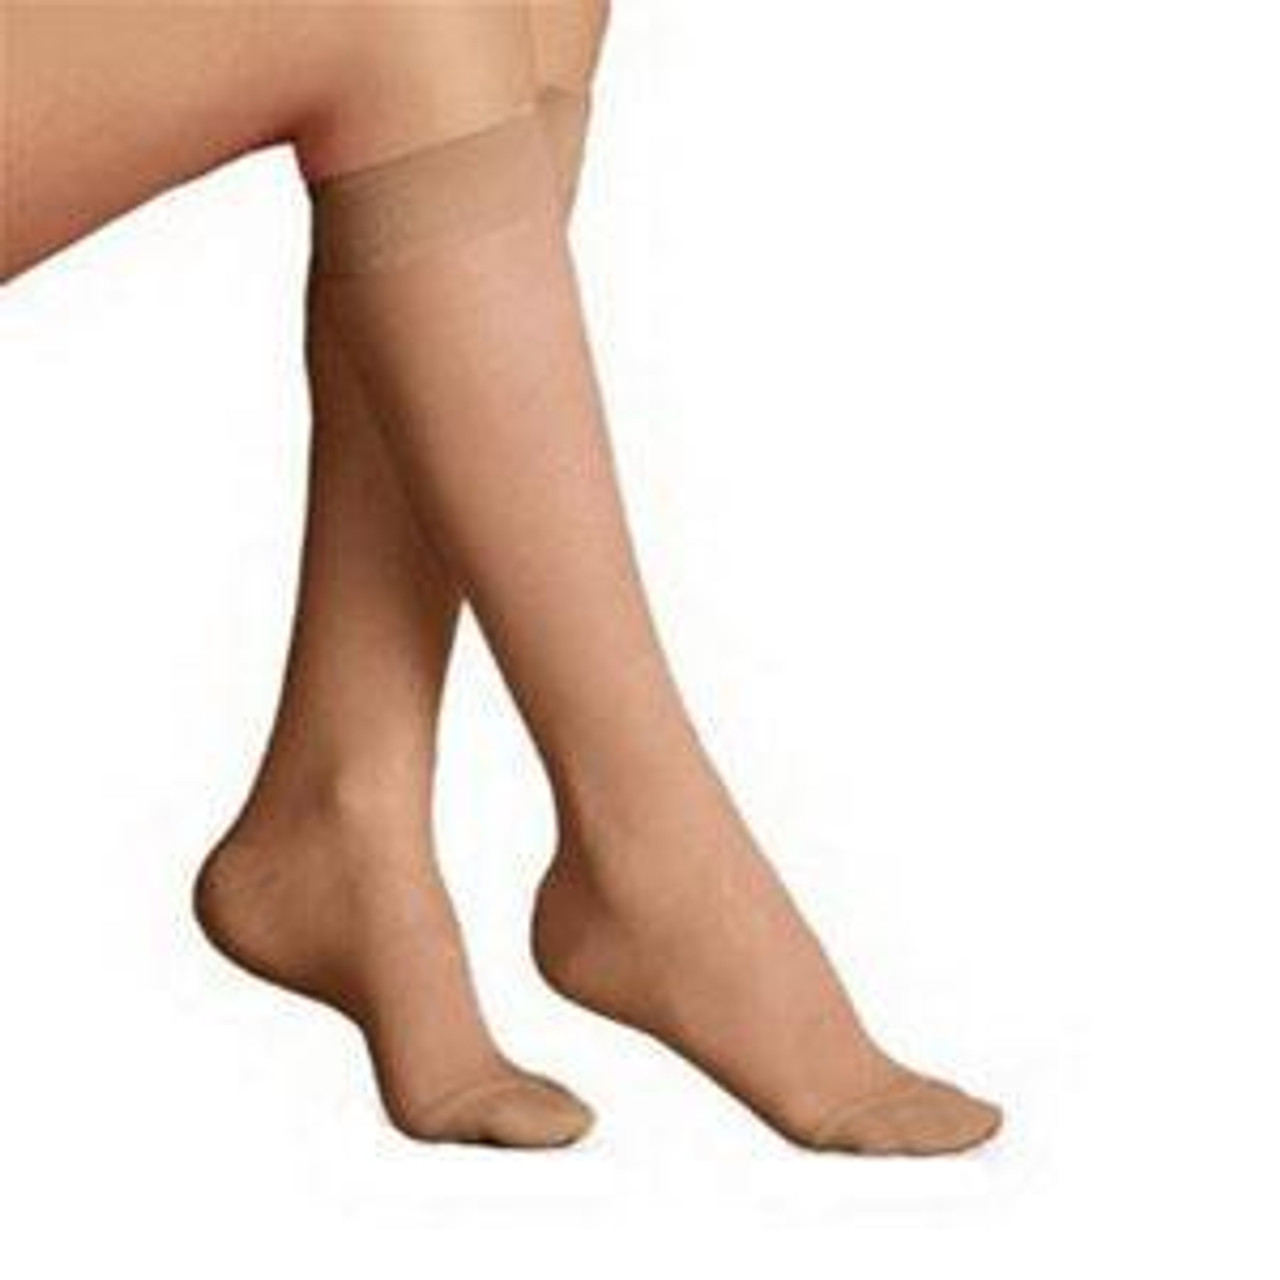 Buy Online Jobst 119404 Ultrasheer Womens Knee High Compression Stockings Closed Toe Canada